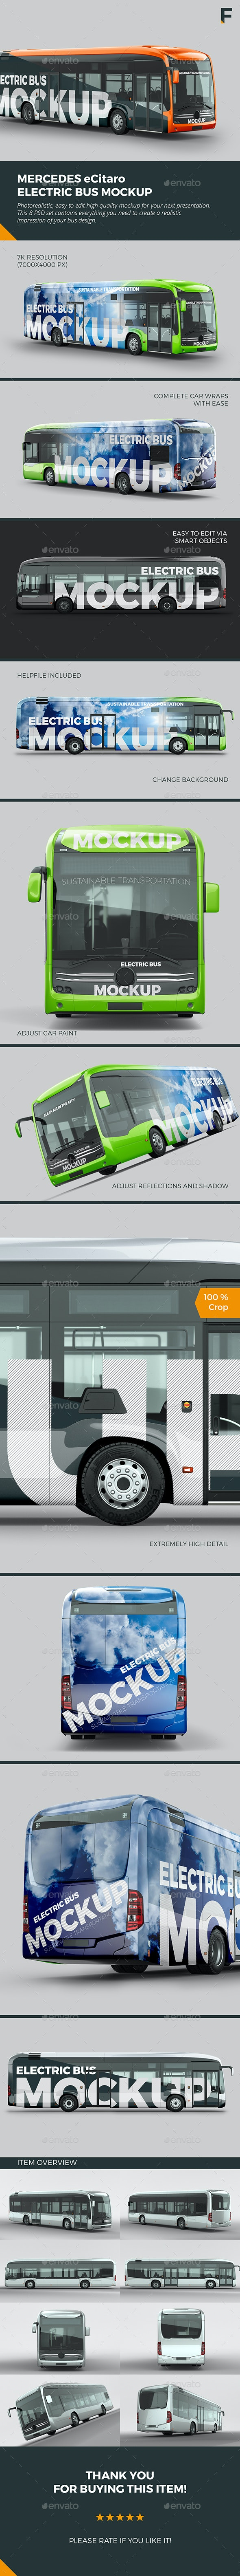 Electric Bus Mockup - Vehicle Wraps Print